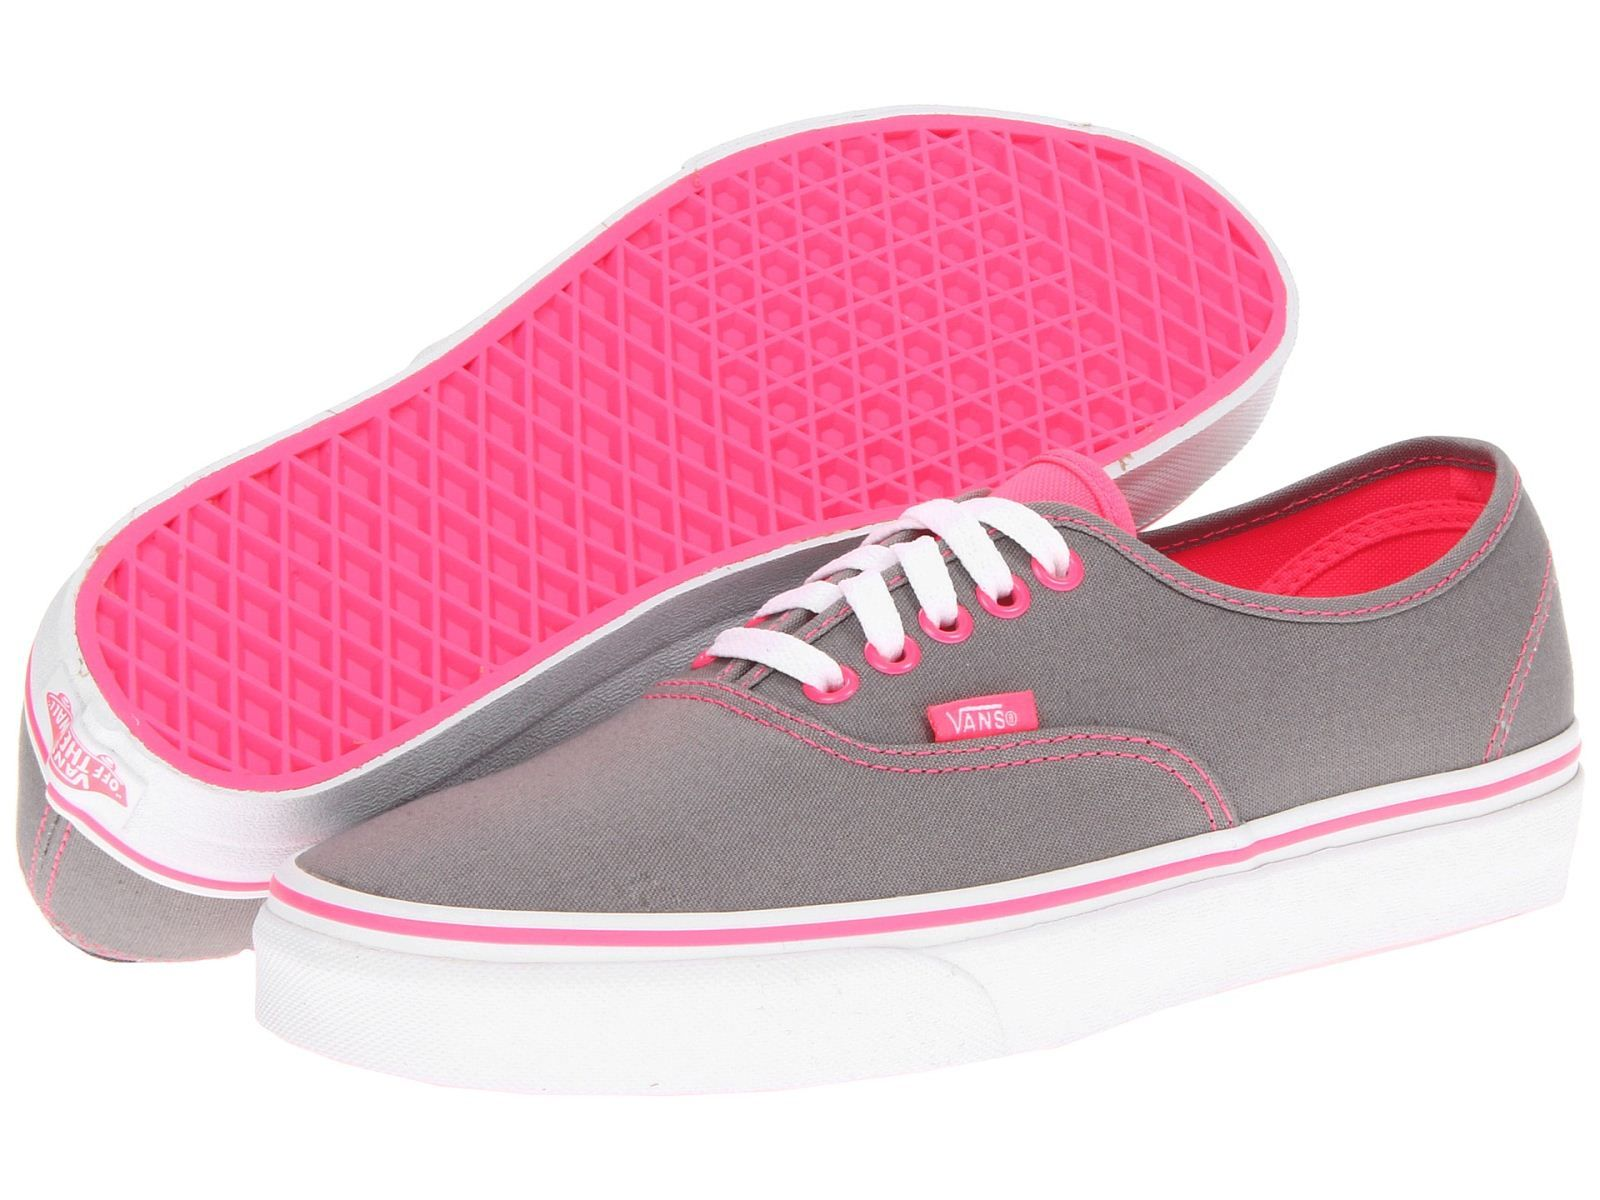 Ténis Vans Feminino   shoes   Pinterest   Vans shoes, Vans and Shoes 0400d5ab61